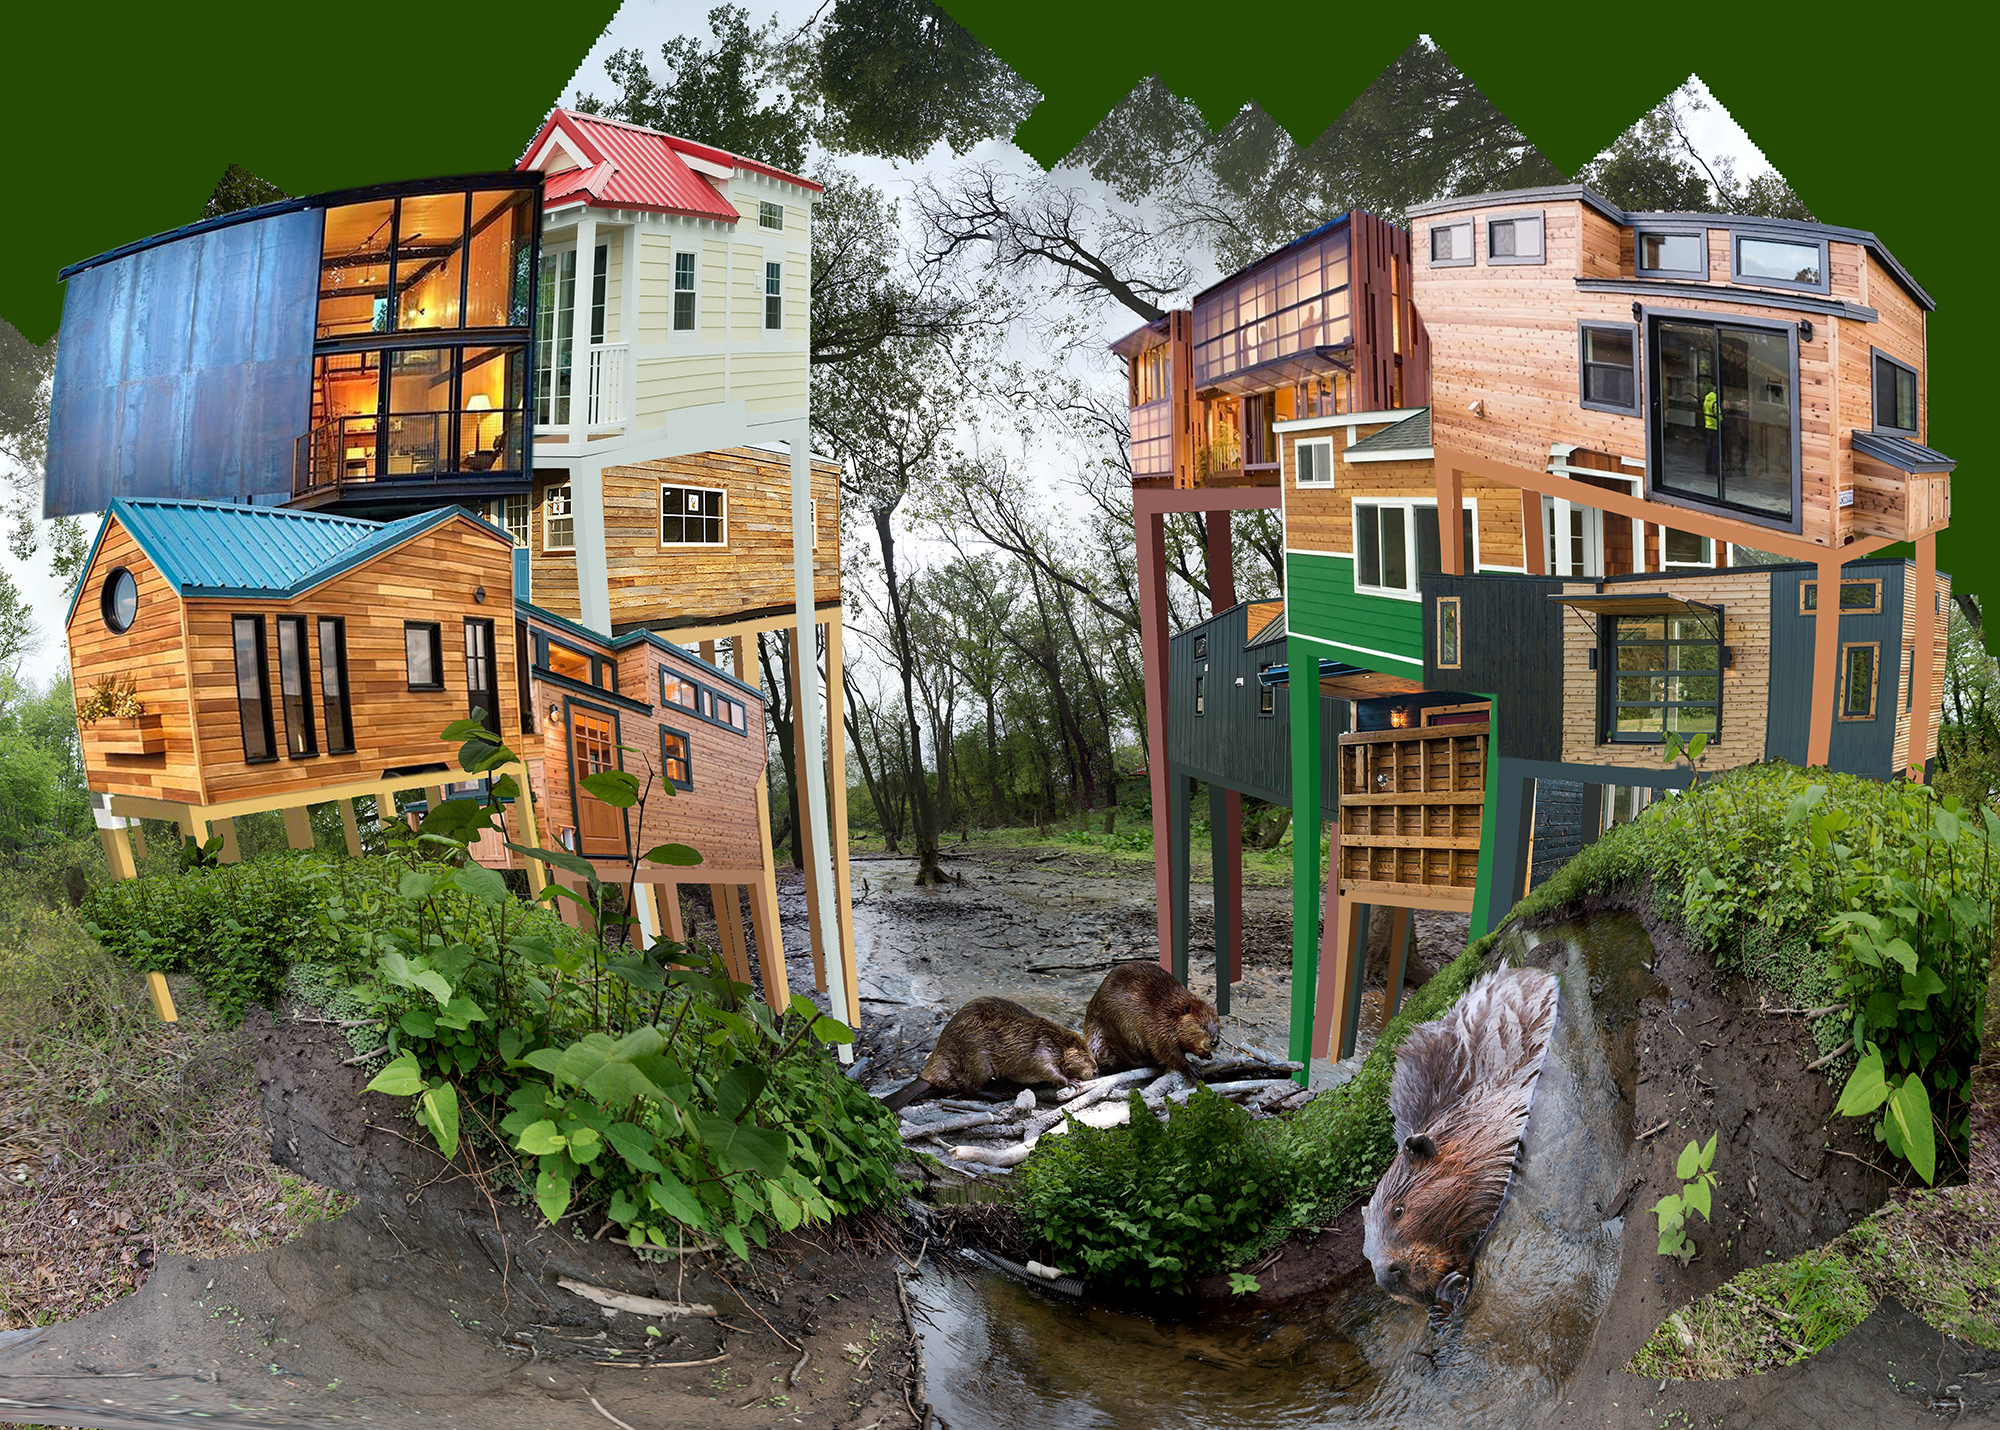 A collaged image with several houses and tress around it.